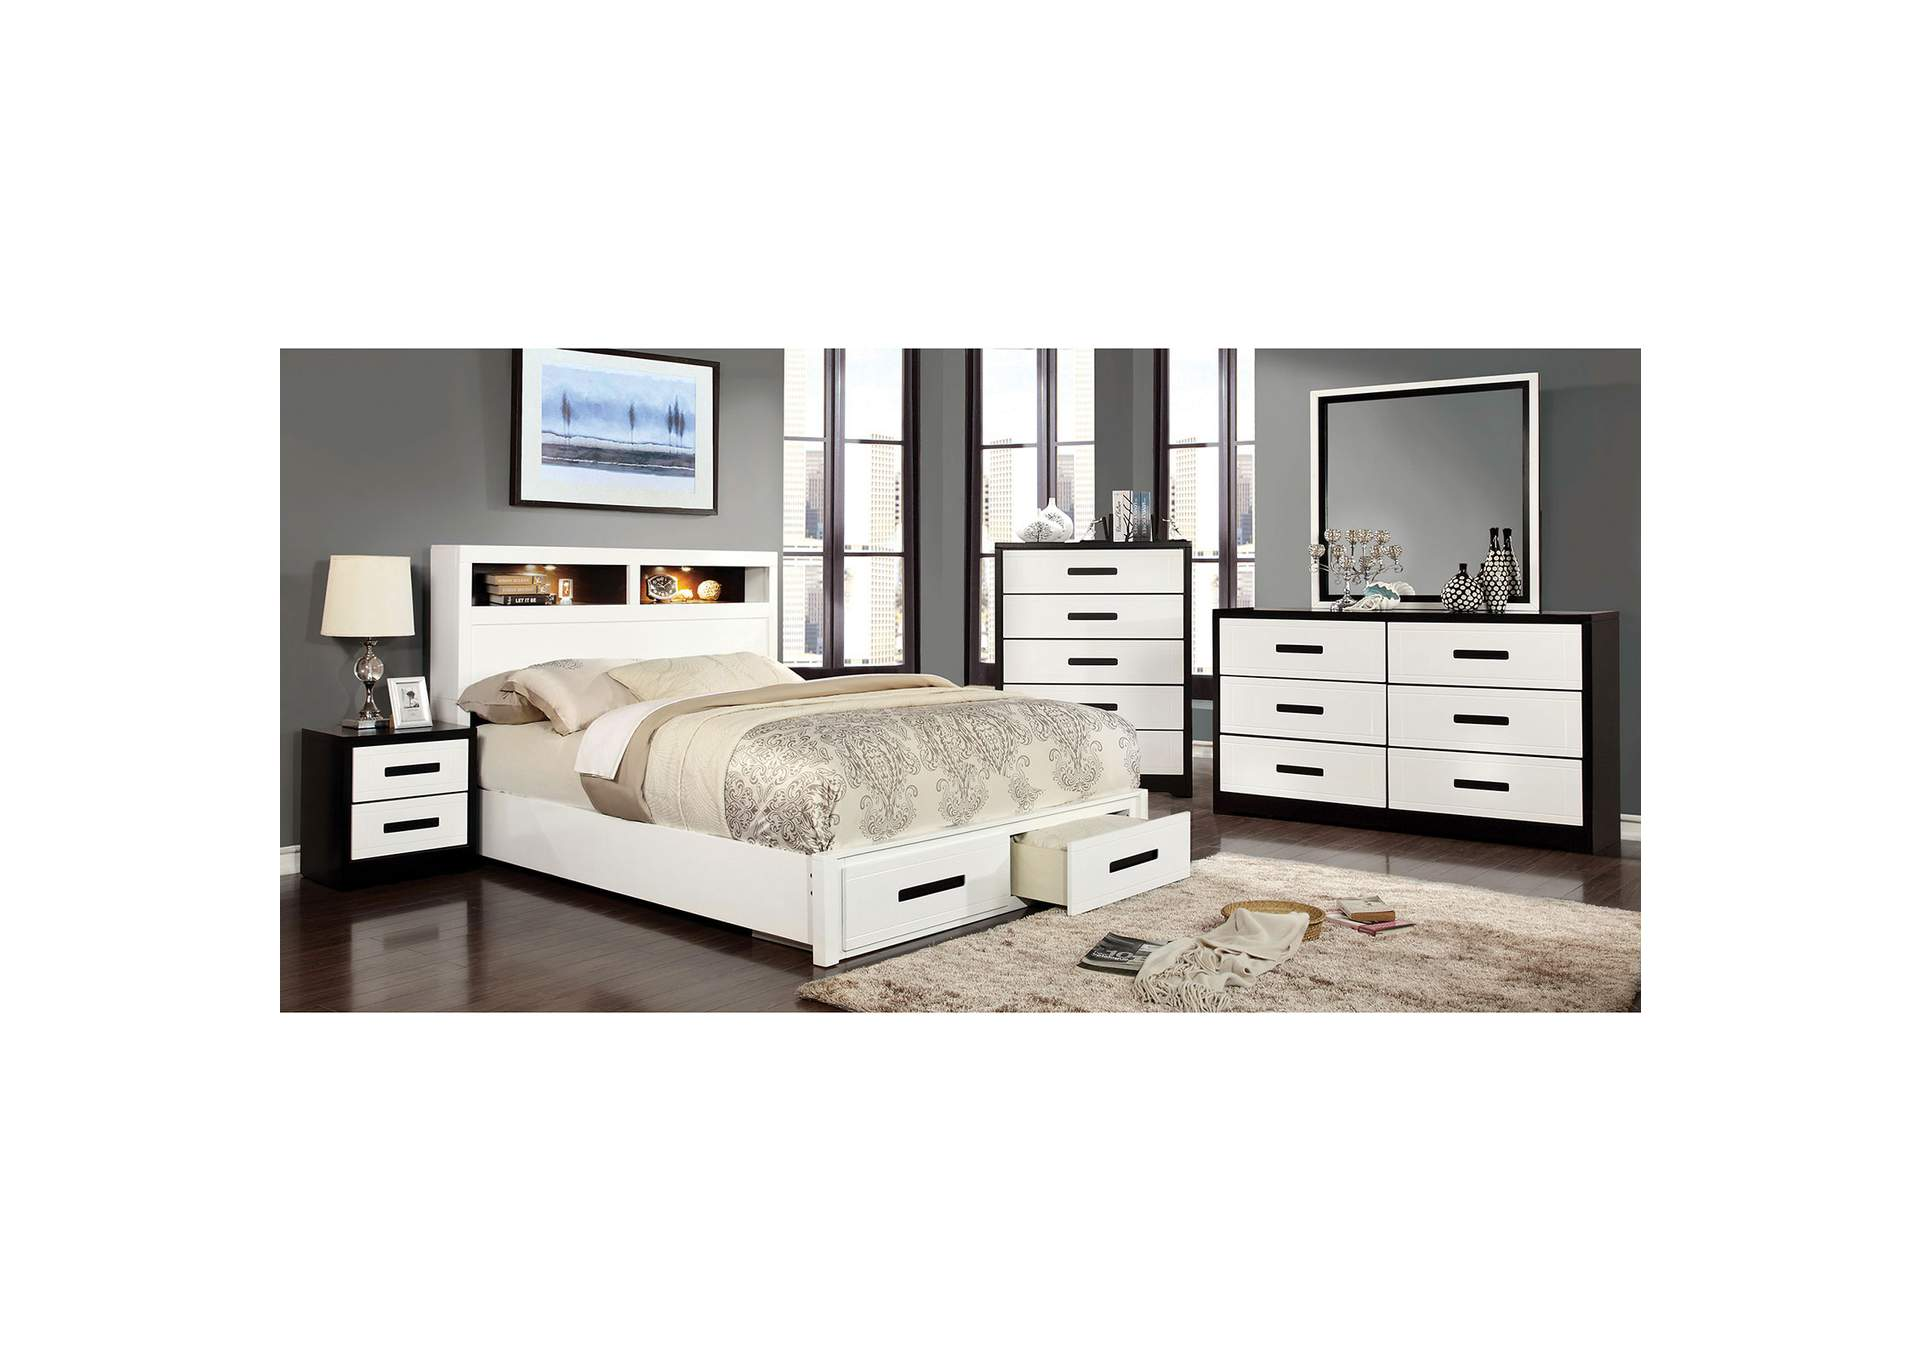 Rutger White & Black Queen Storage Bed,Furniture of America